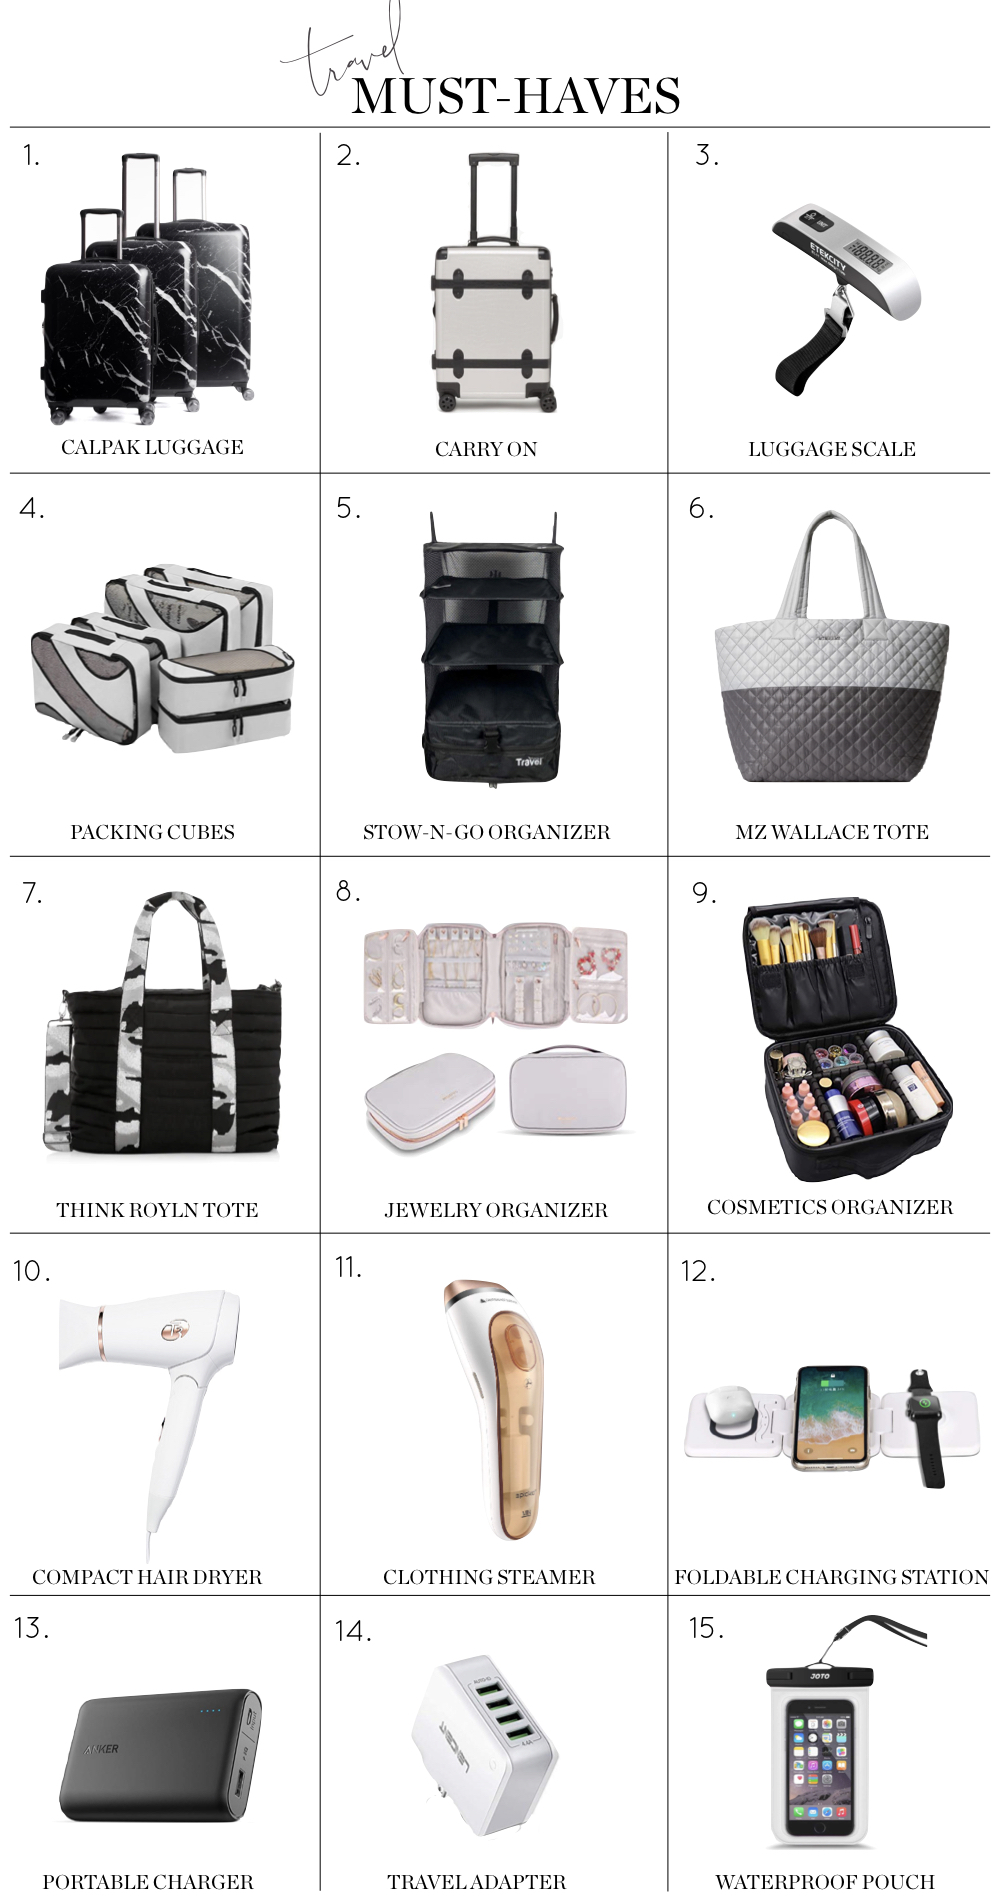 Travel Must-Haves, the best travel bags and accessories Calpak luggage, packing cubes, chargers, toiletry dop kits